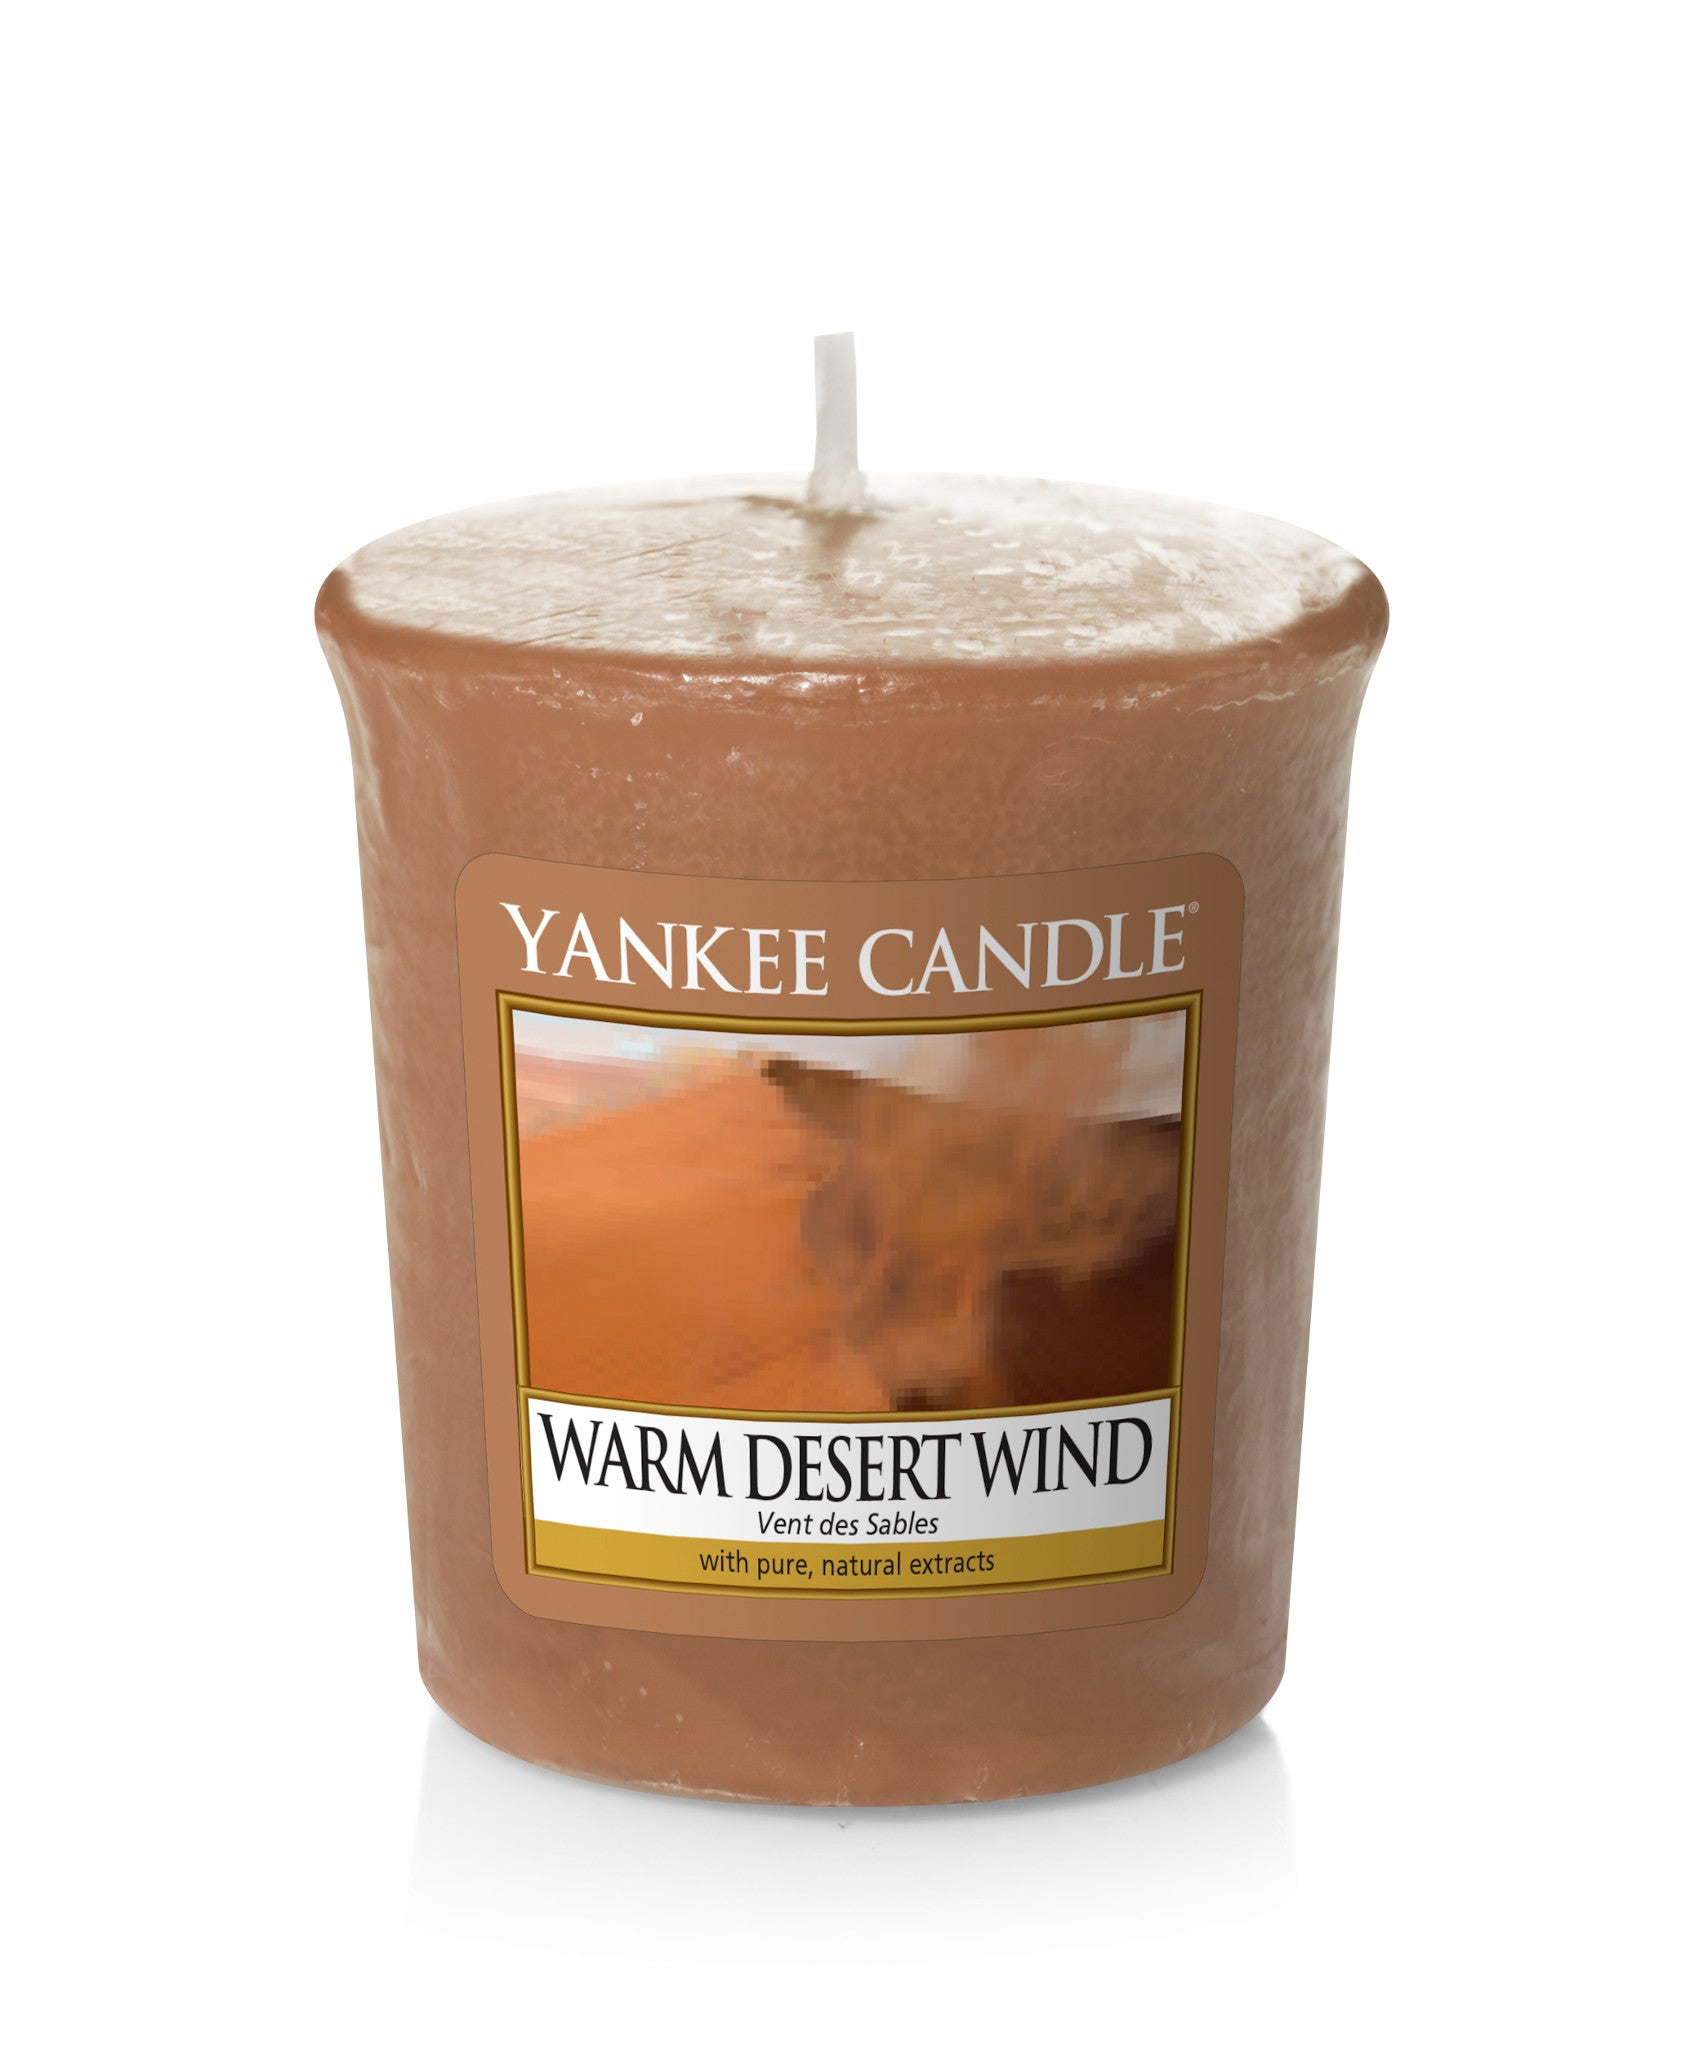 WARM DESERT WIND -Yankee Candle- Candela Sampler